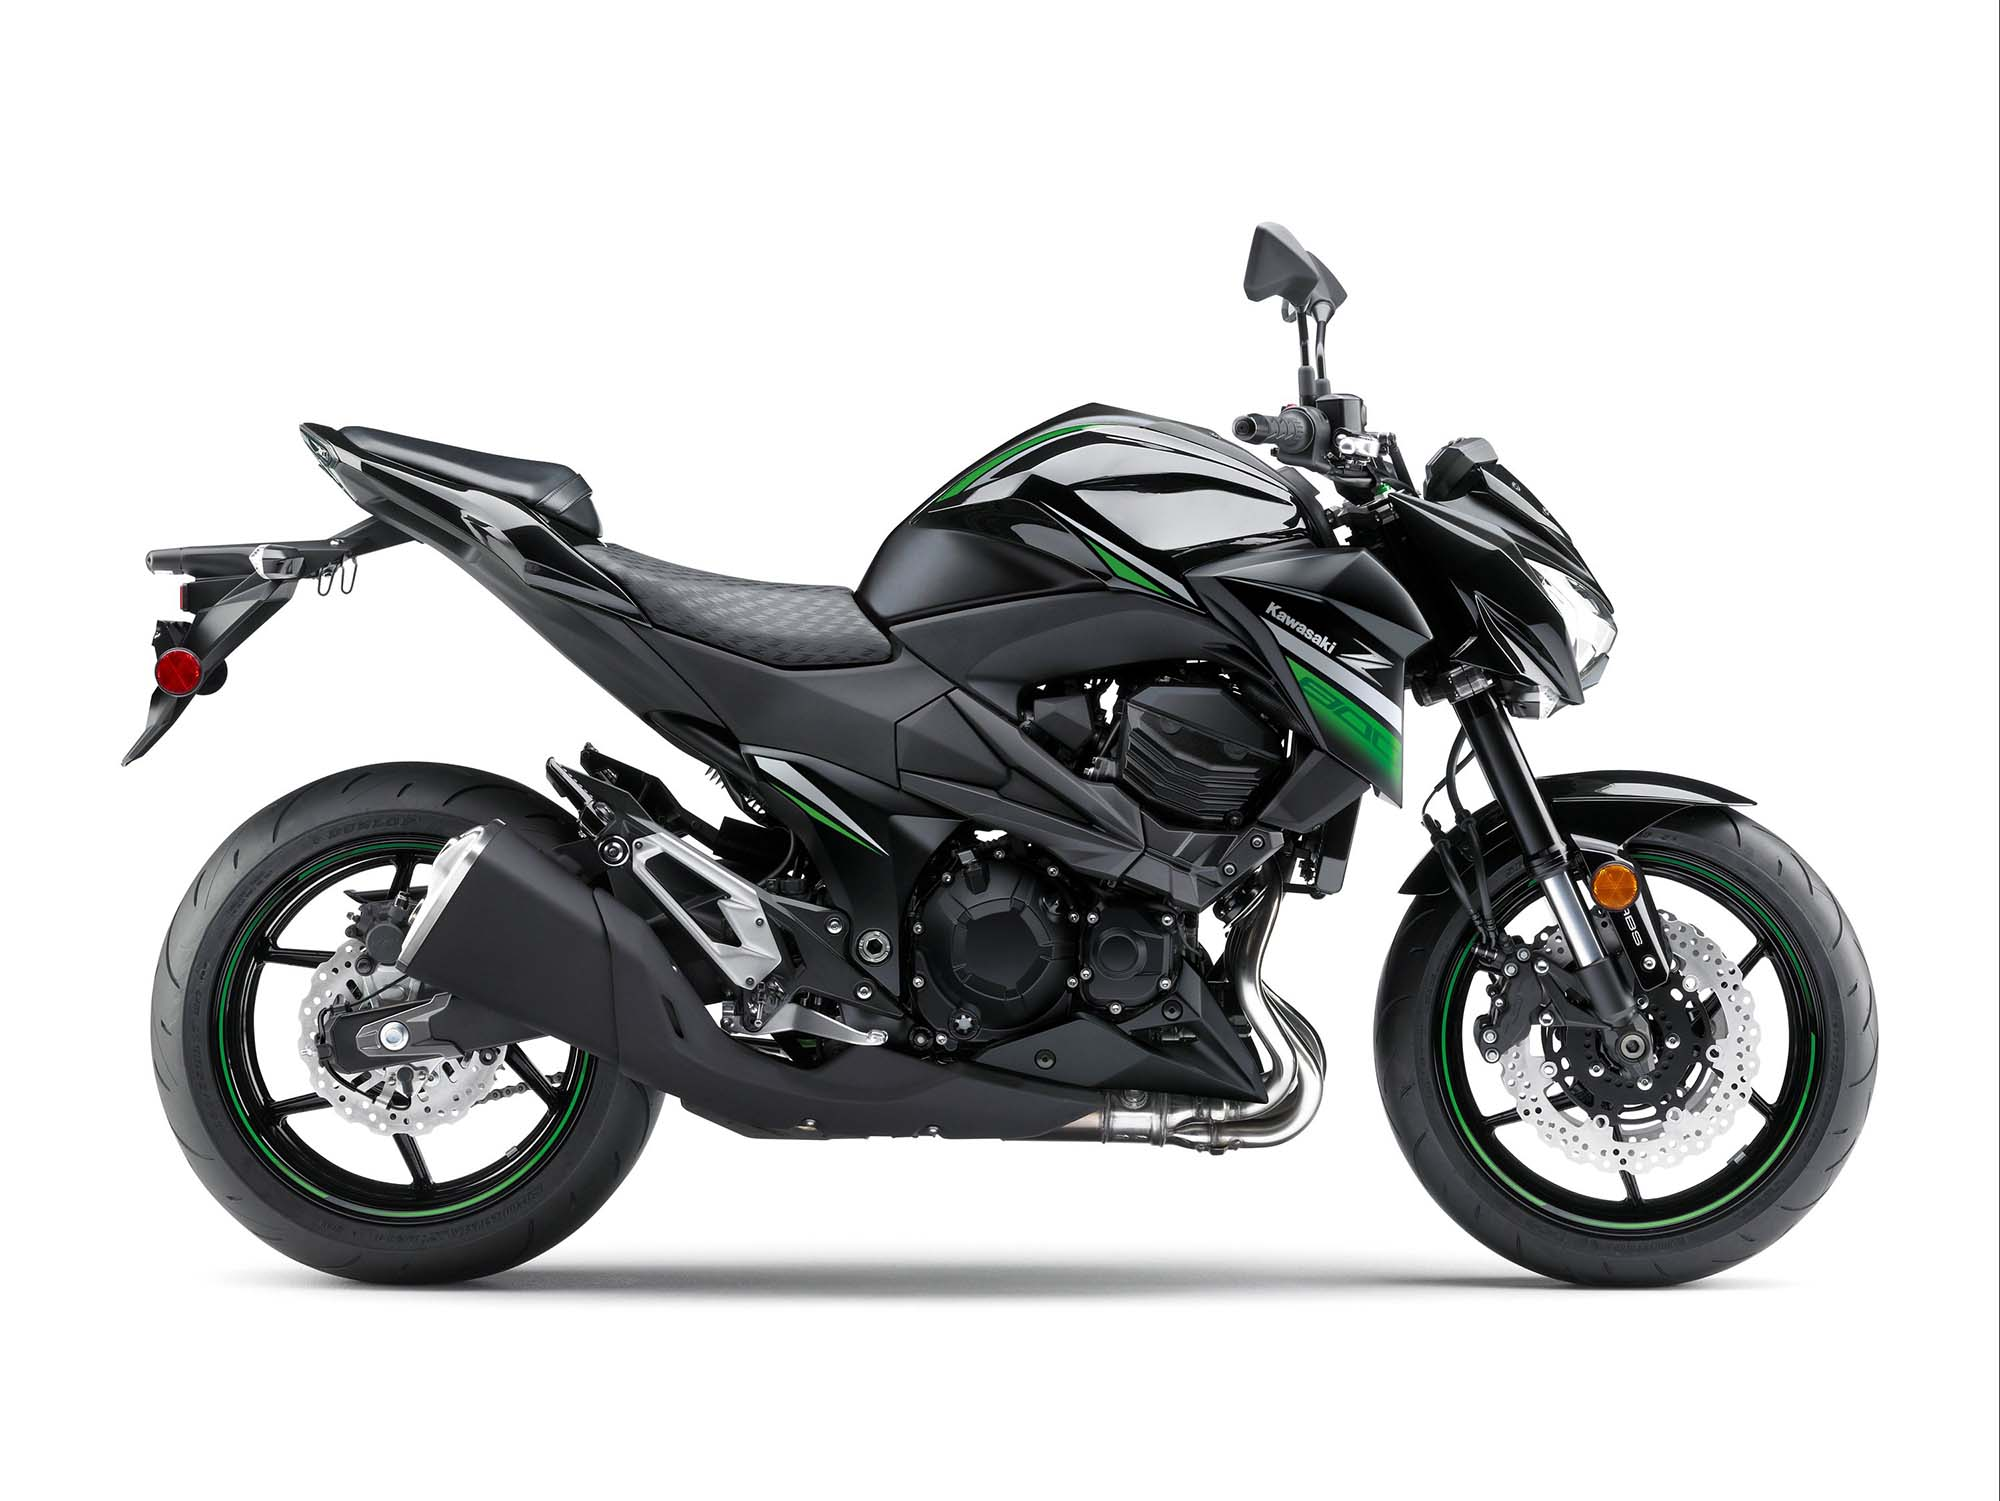 2016 Kawasaki Z800 Abs Coming To 49 States Of The Usa Asphalt Amp Rubber